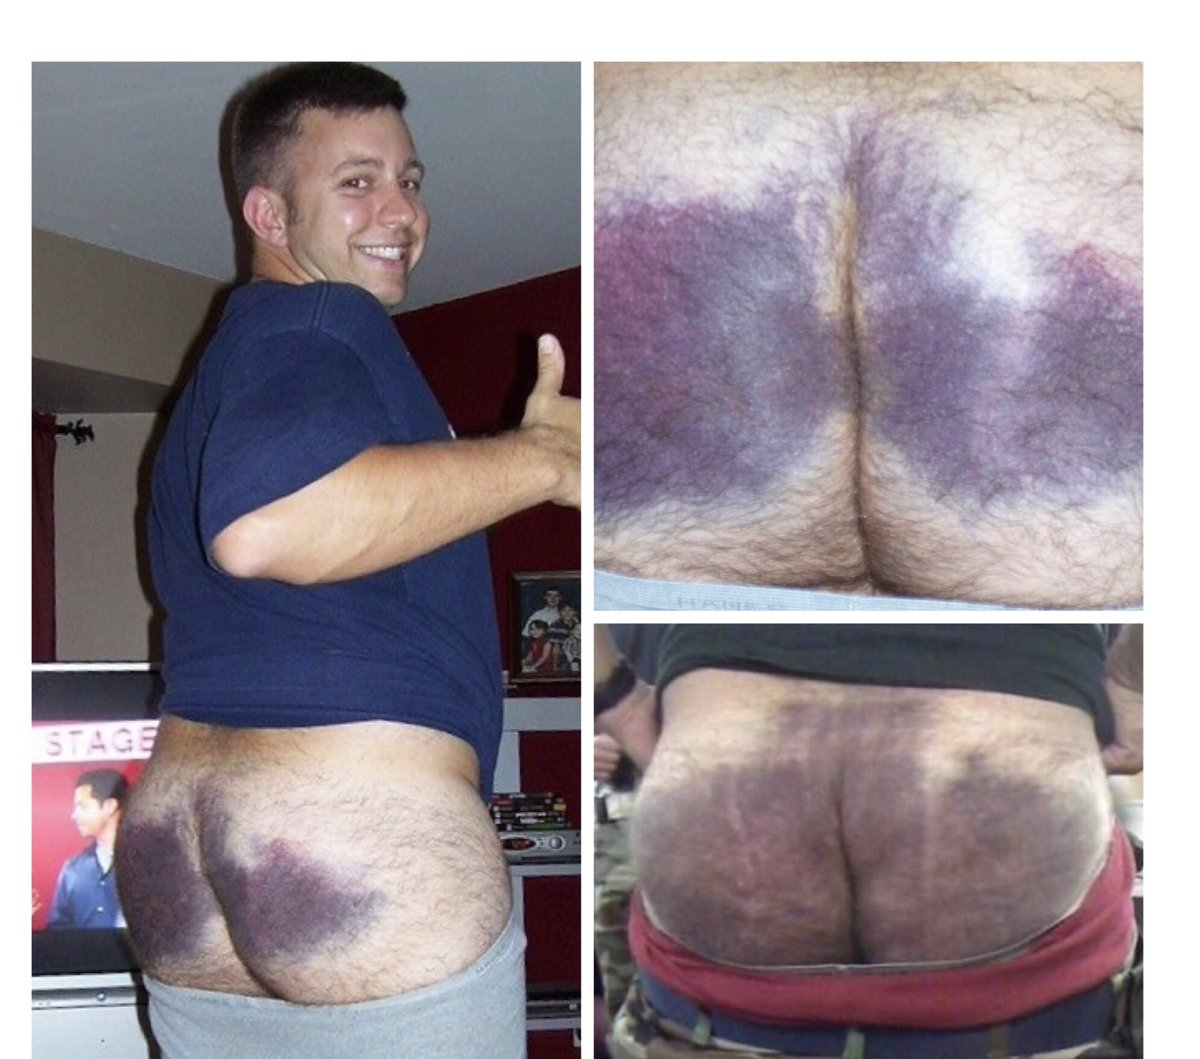 🍻 to the 15 year anniversary of the most painful experience of my life. My broken and detached tailbone when I fell off a quad and landed on river rocks in the squatted position. 9 lbs of swelling in 3 days and yes it still fucking hurts. #3uglyones #NationalDonutDay #whynot